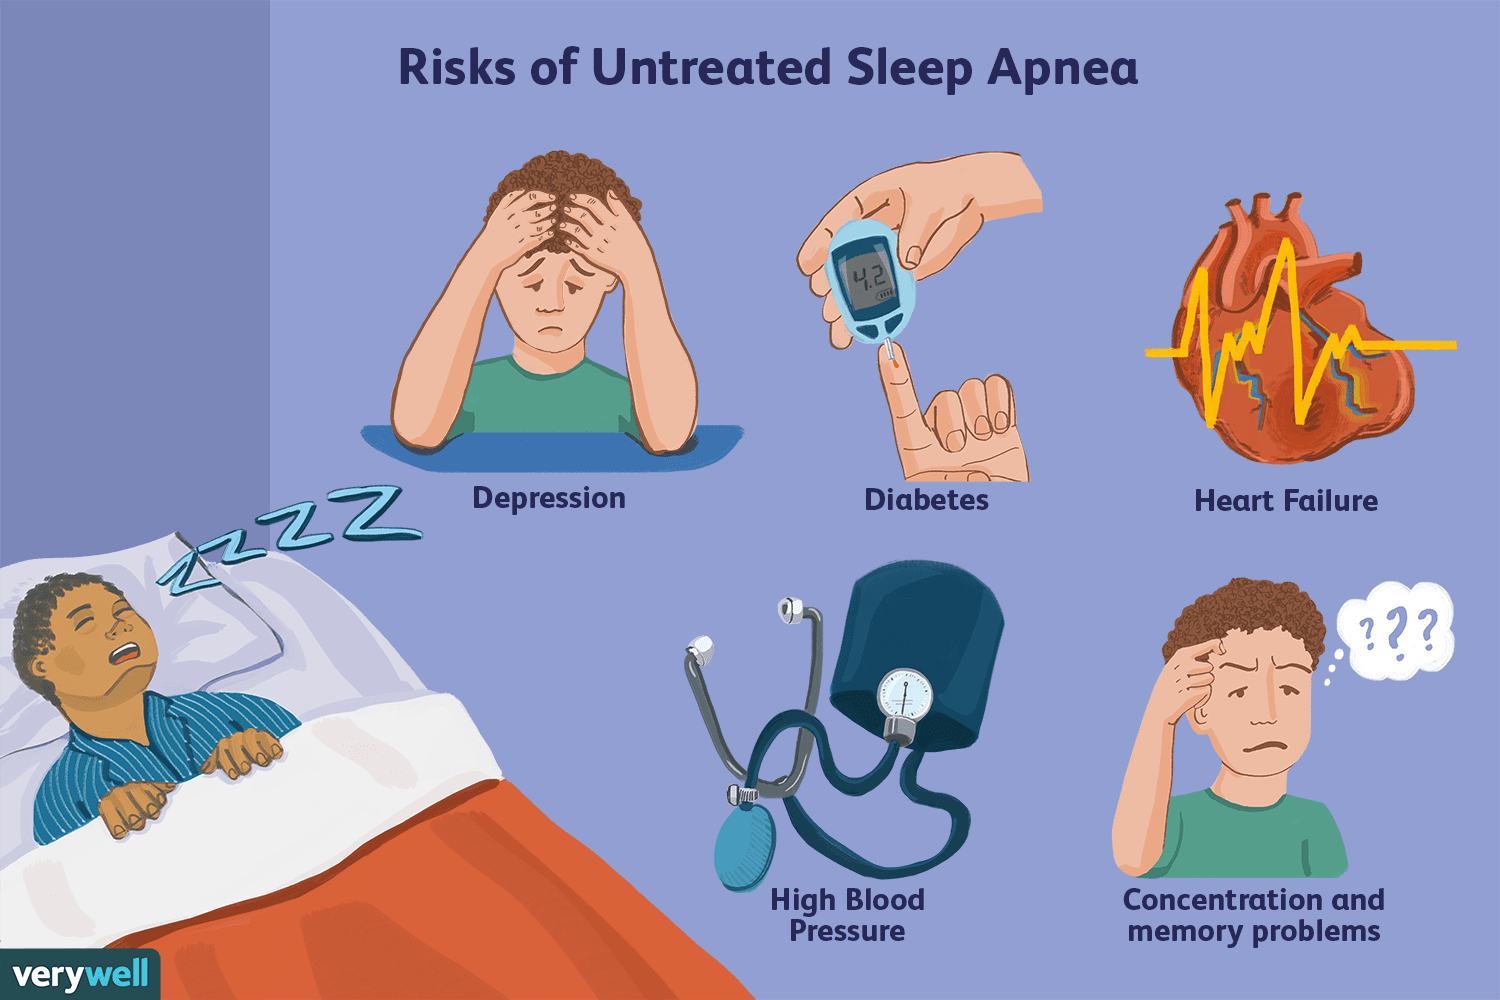 Risks of Untreated Sleep Apnea